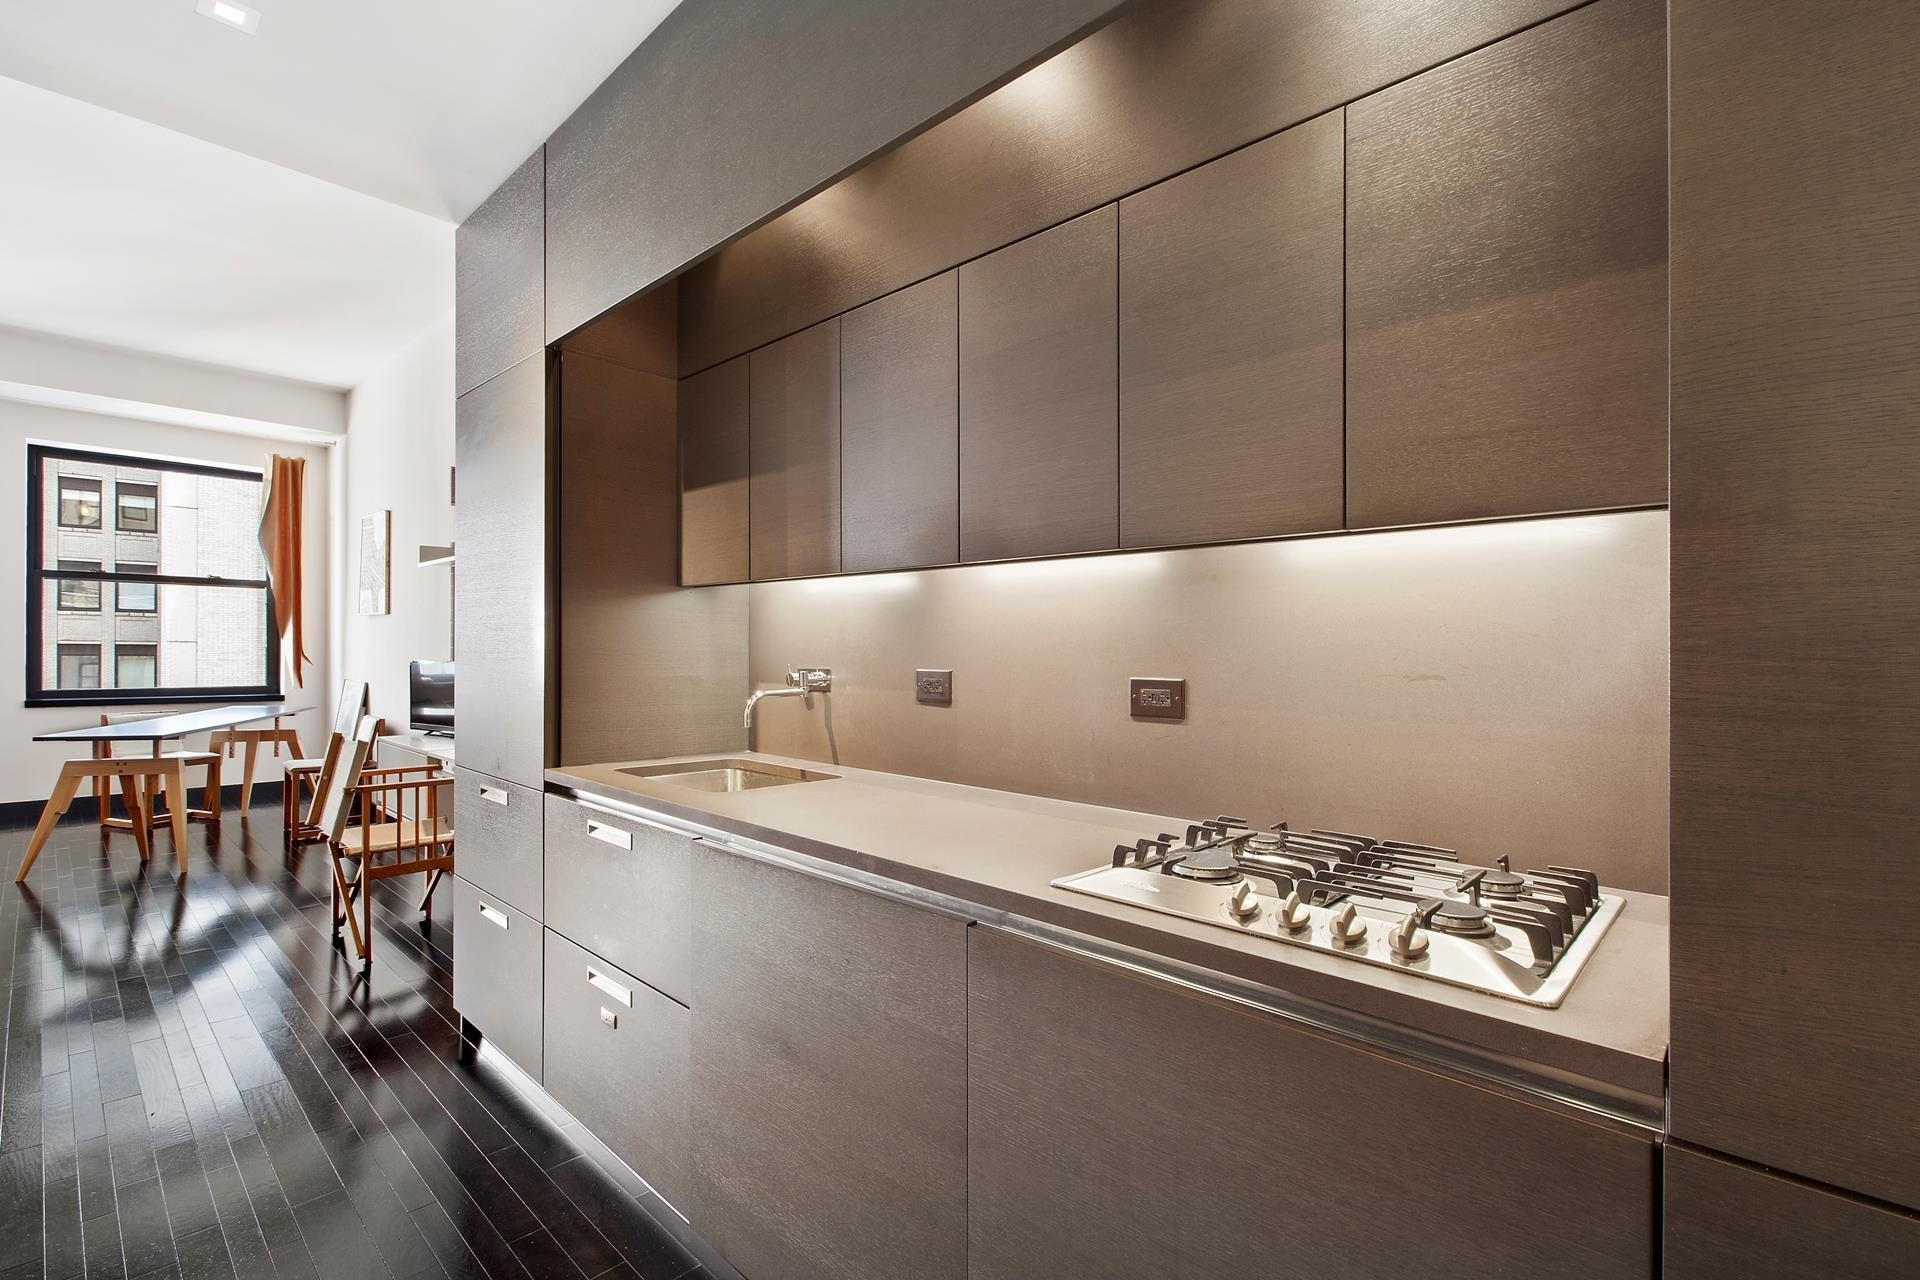 3. Condominiums at 20 Pine - The Collection, 20 Pine St, 2903 Financial District, New York, NY 10005